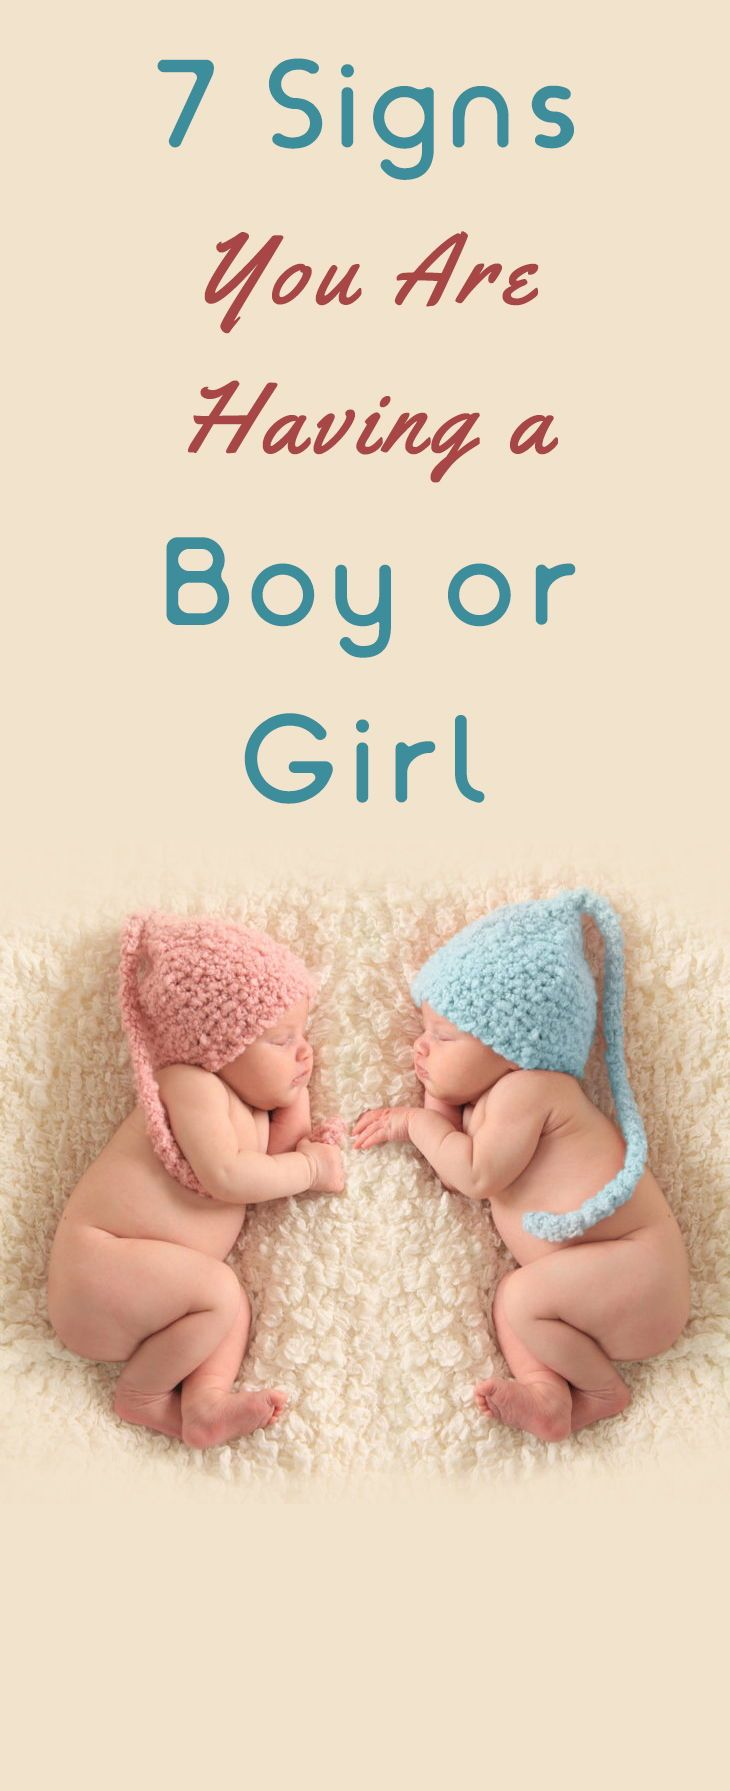 7 signs you are having a boy or girl babies girls and pregnancy